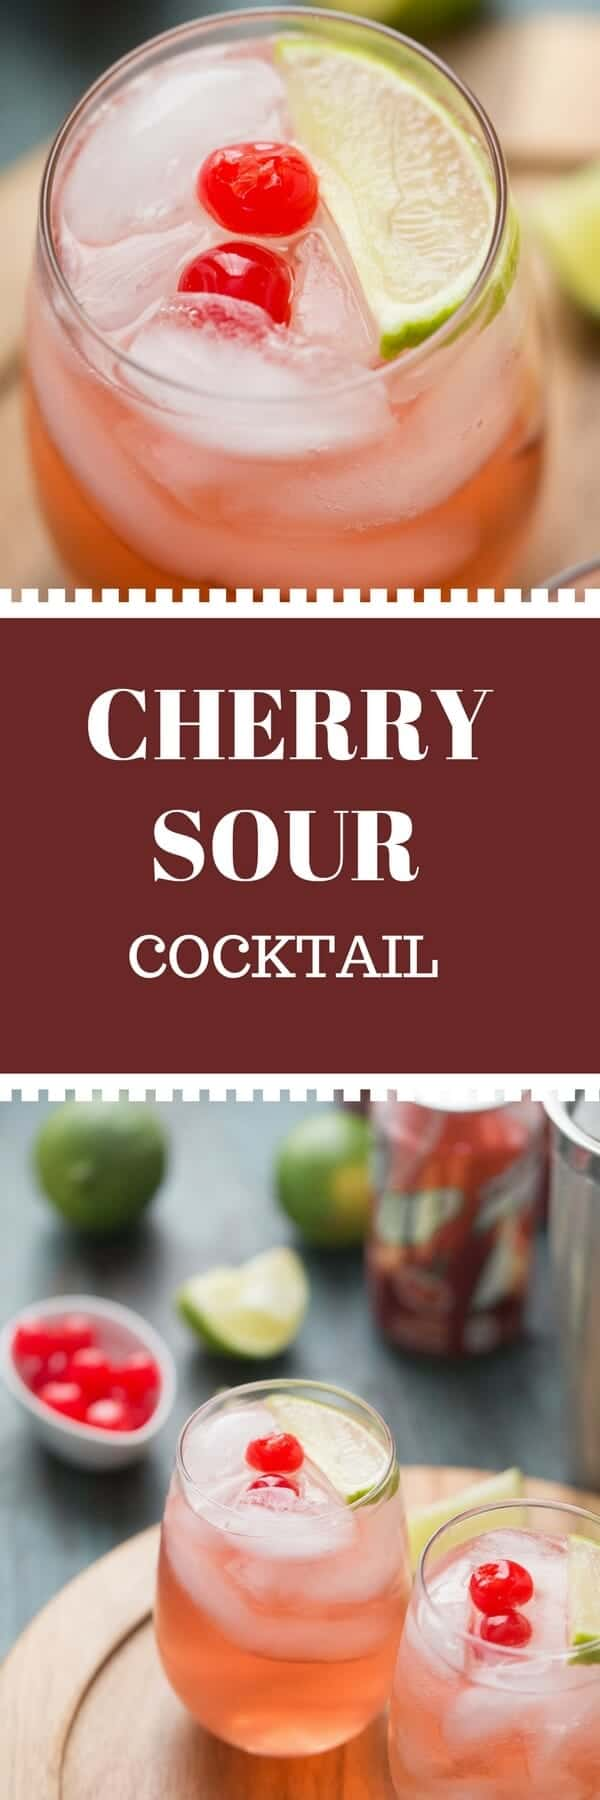 Sour cocktails are fun to drink and make, but this cherry sour cocktail; with it's sour mix and it's sweet cherry flavor beats any sour cocktail out there!